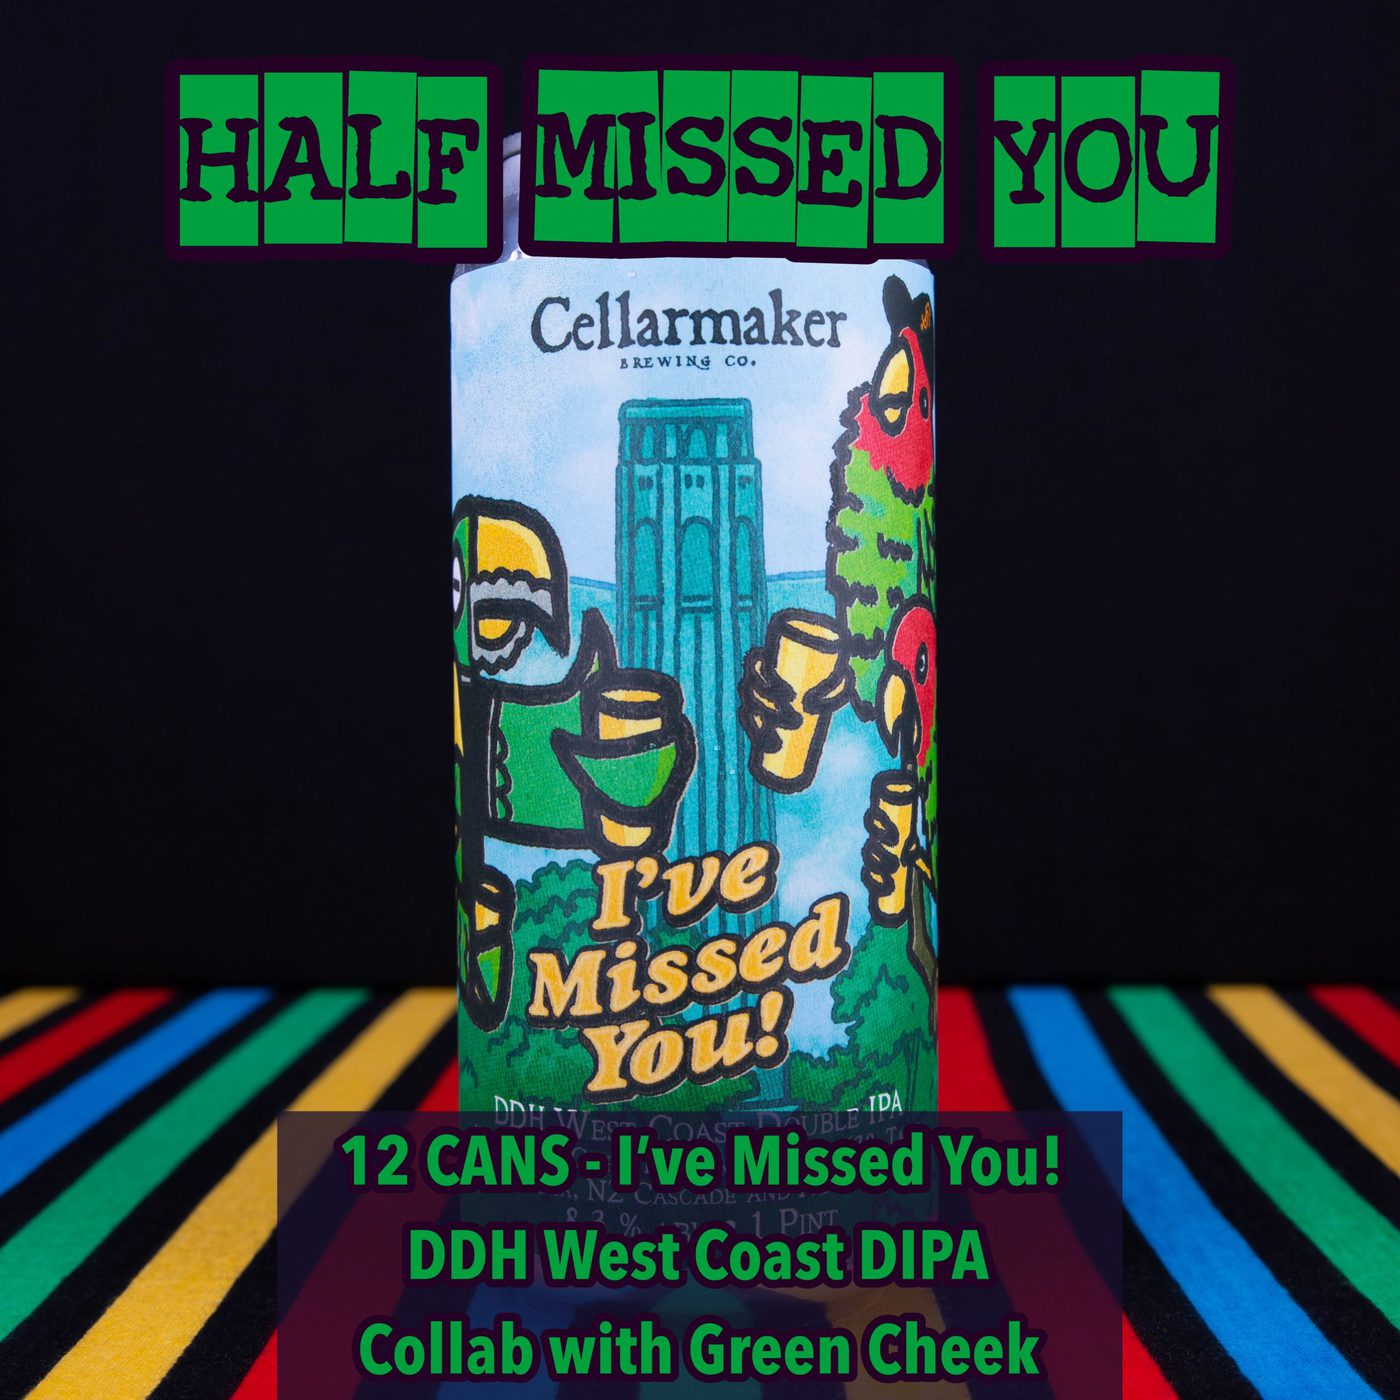 12 CANS  I've Missed You! – DDH West Coast DIPA Collab With Green Cheek – Shipping Out Tuesday 5/4 For Next Day Delivery*